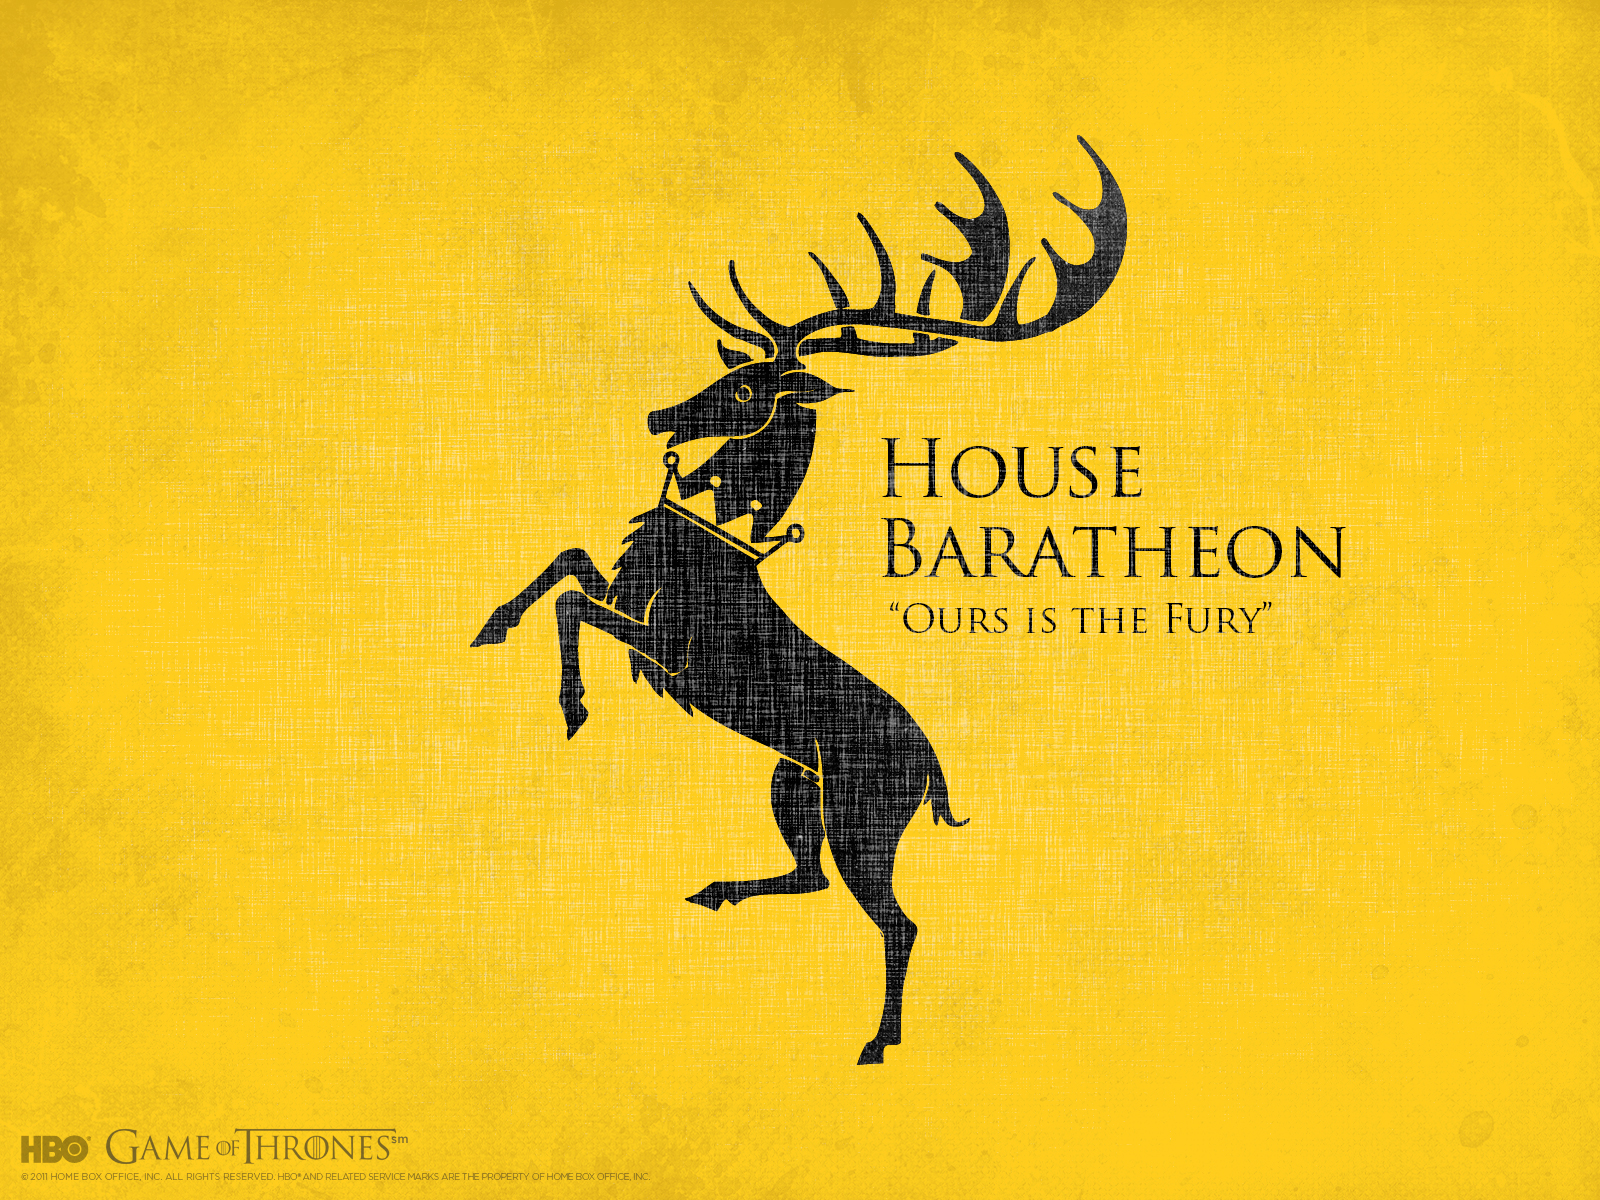 Game of Thrones 1600x1200